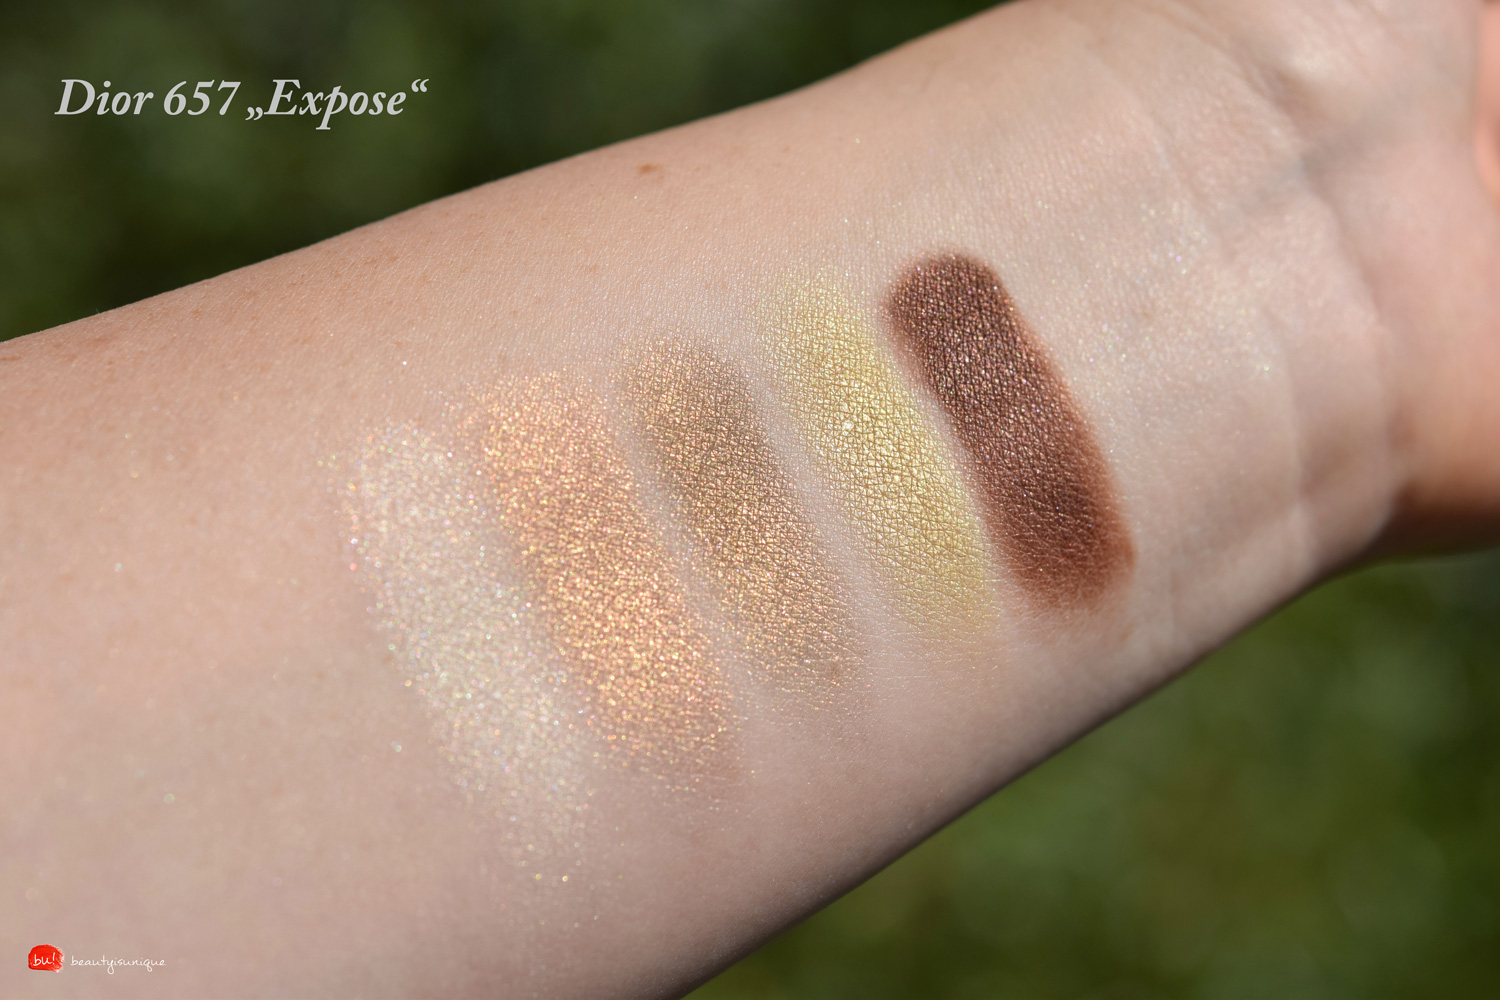 Dior-expose-swatches-657-eyeshadow-palette